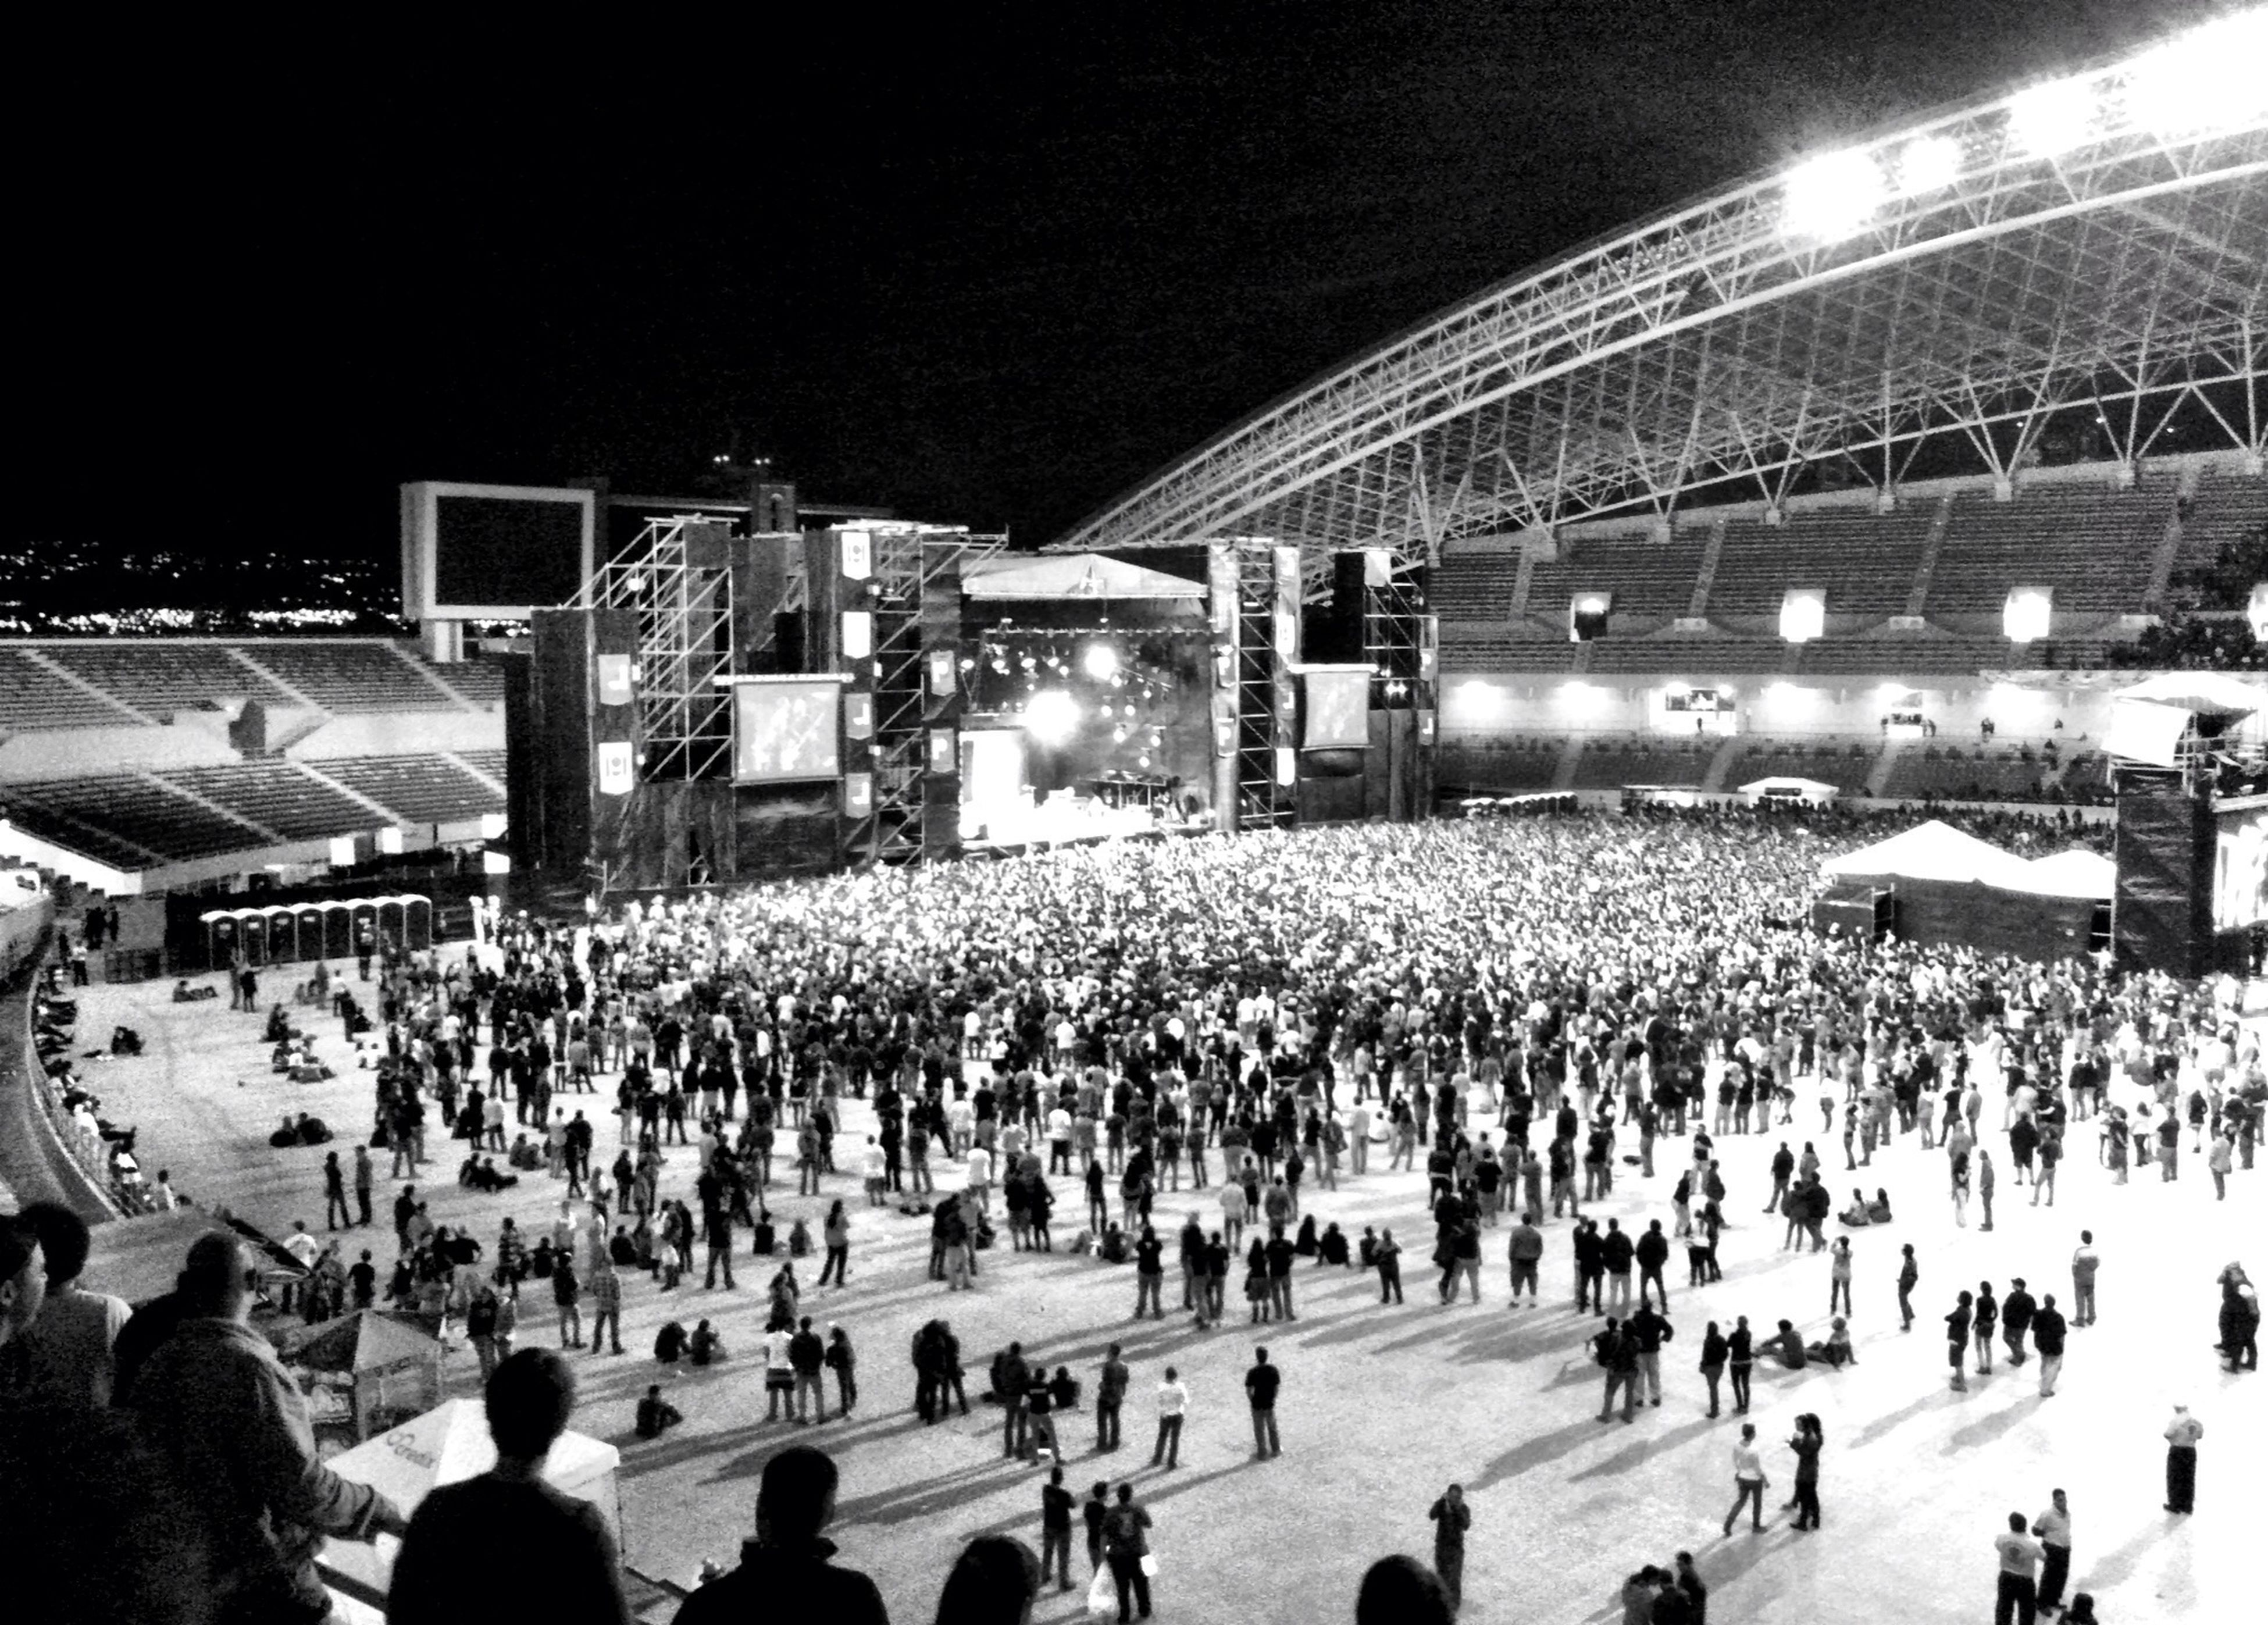 large group of people, crowd, illuminated, men, person, lifestyles, leisure activity, night, event, spectator, performance, arts culture and entertainment, enjoyment, music, stage - performance space, celebration, mixed age range, fun